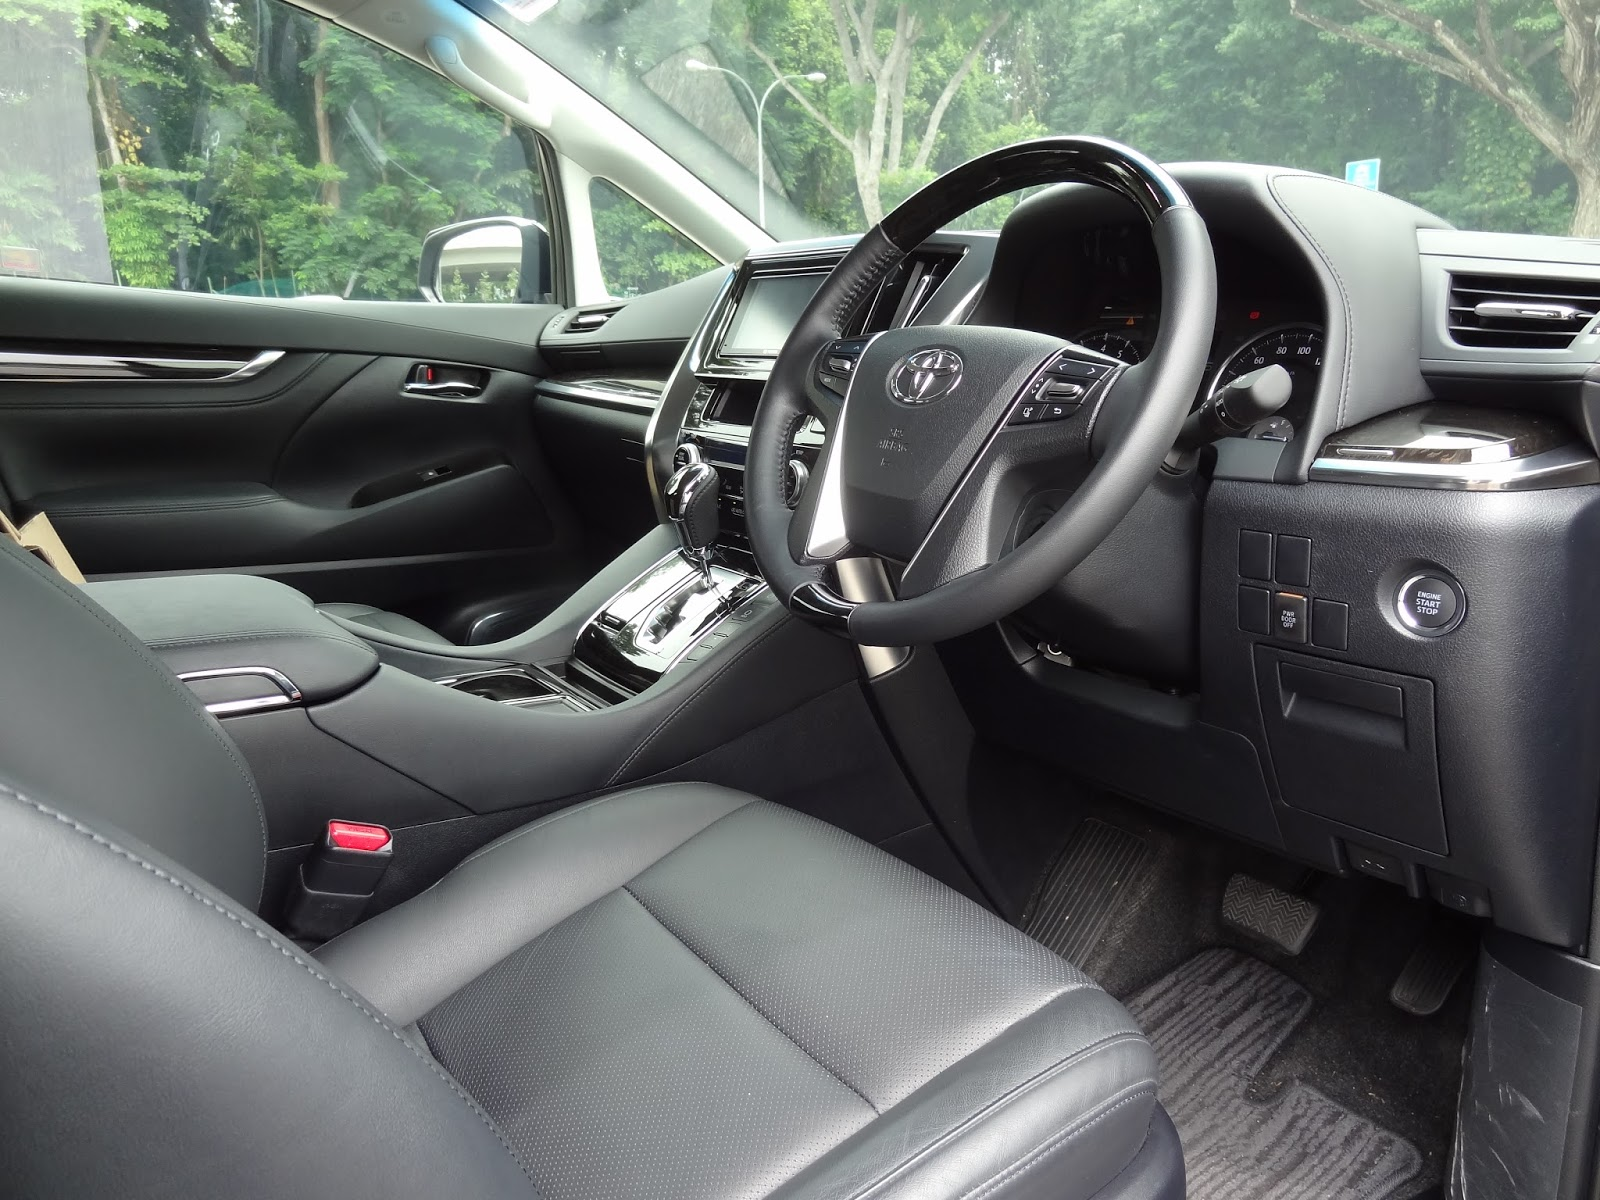 all new vellfire 2015 interior gambar grand avanza veloz shaun owyeong toyota 2 5 elegance car review tuesday november 10